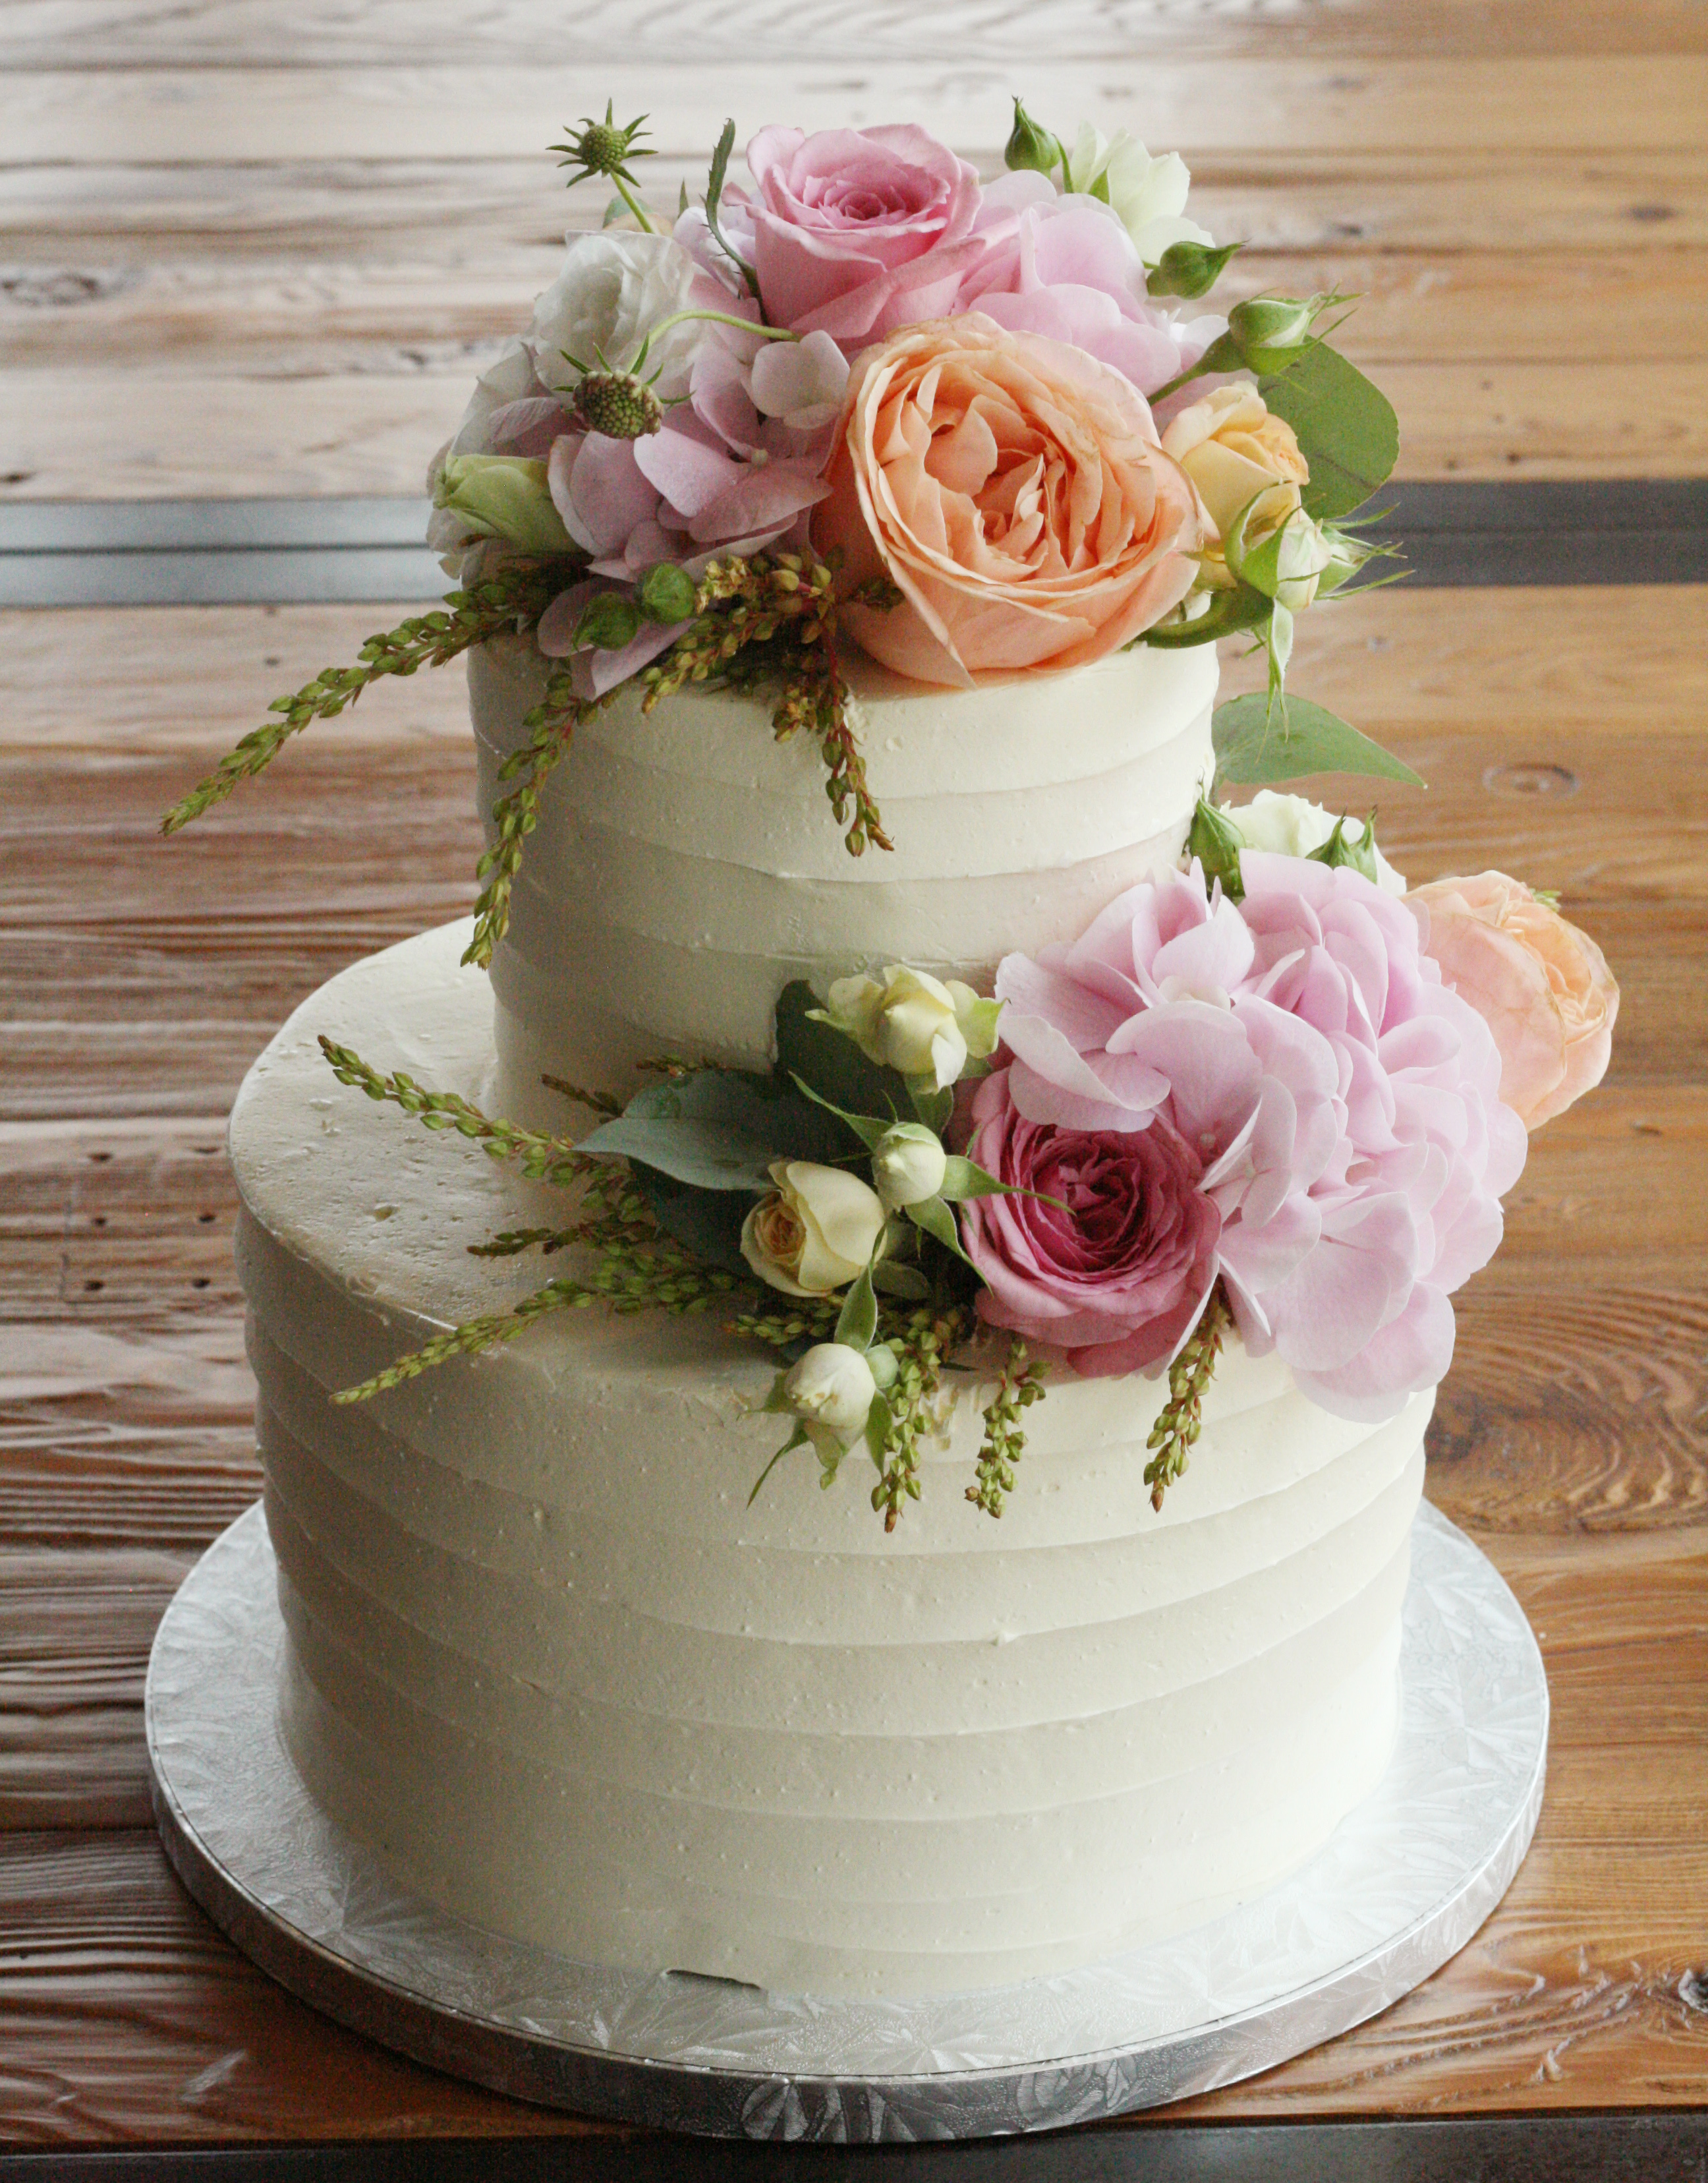 Wedding Cake Flowers.The Gateau House Finest Gateaux In Auckland New Zealand Product